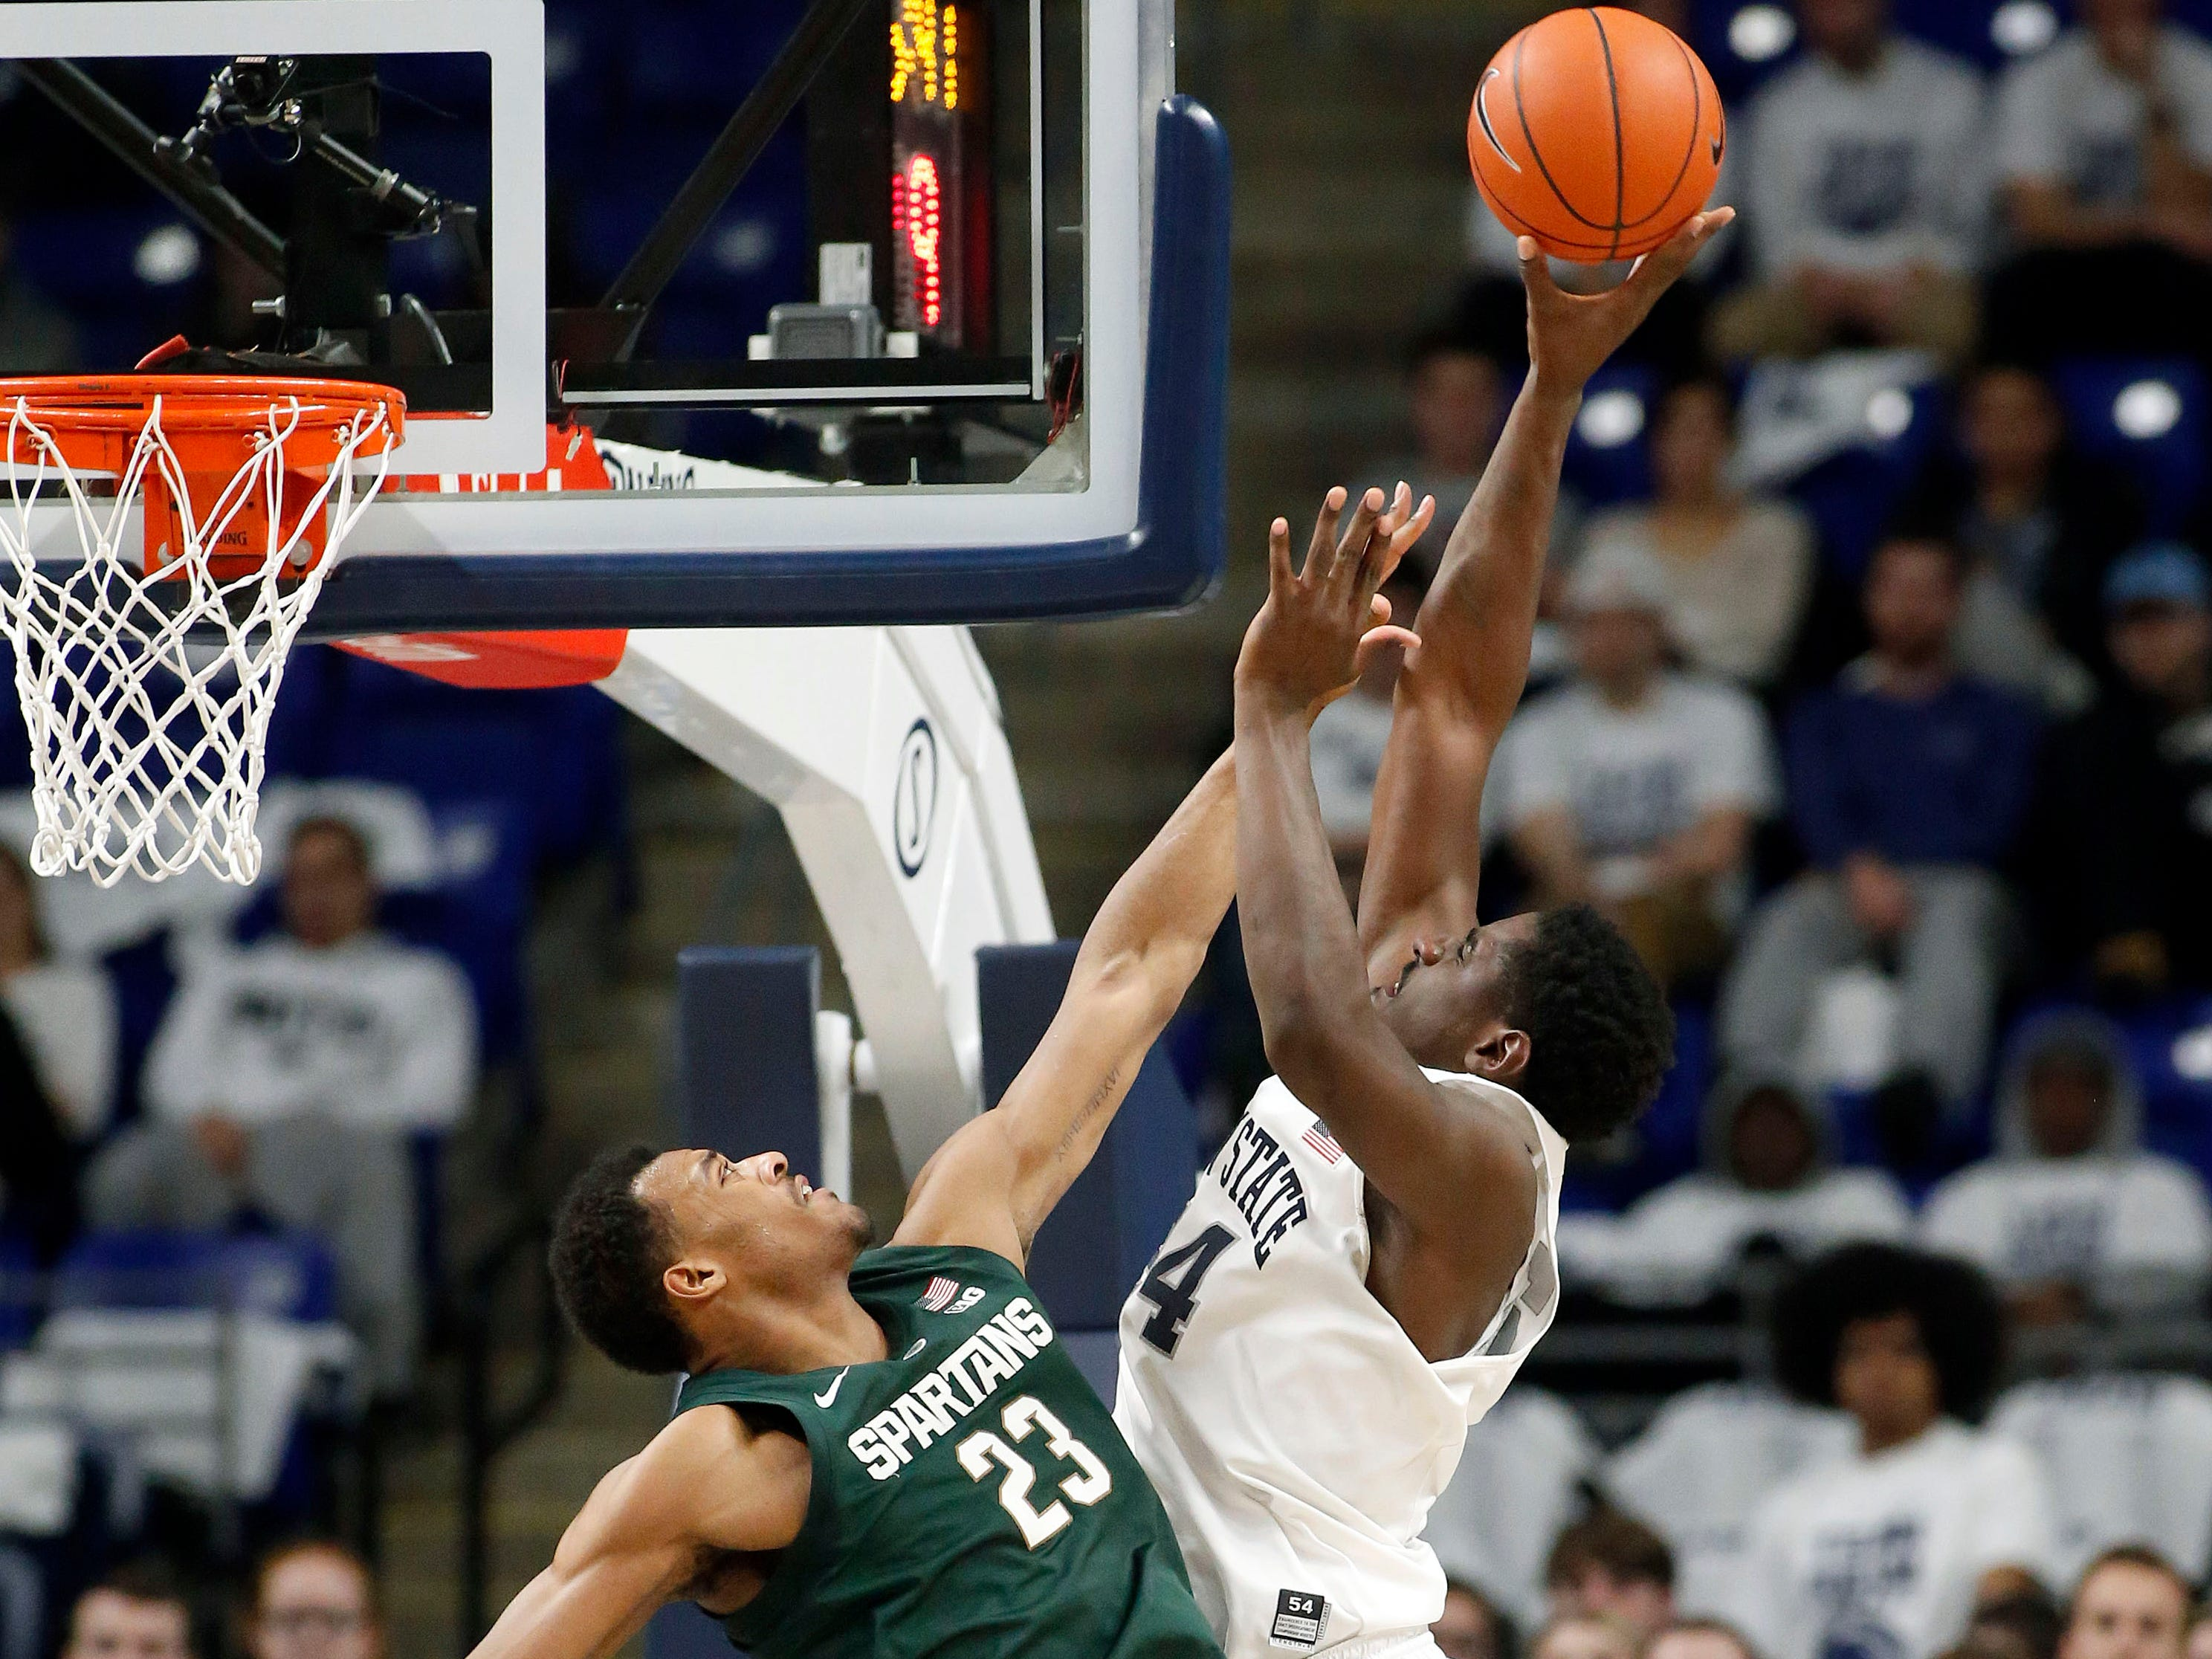 Penn State's Mike Watkins (24) goes to the basket as Michigan State's Xavier Tillman (23) defends during first half action.